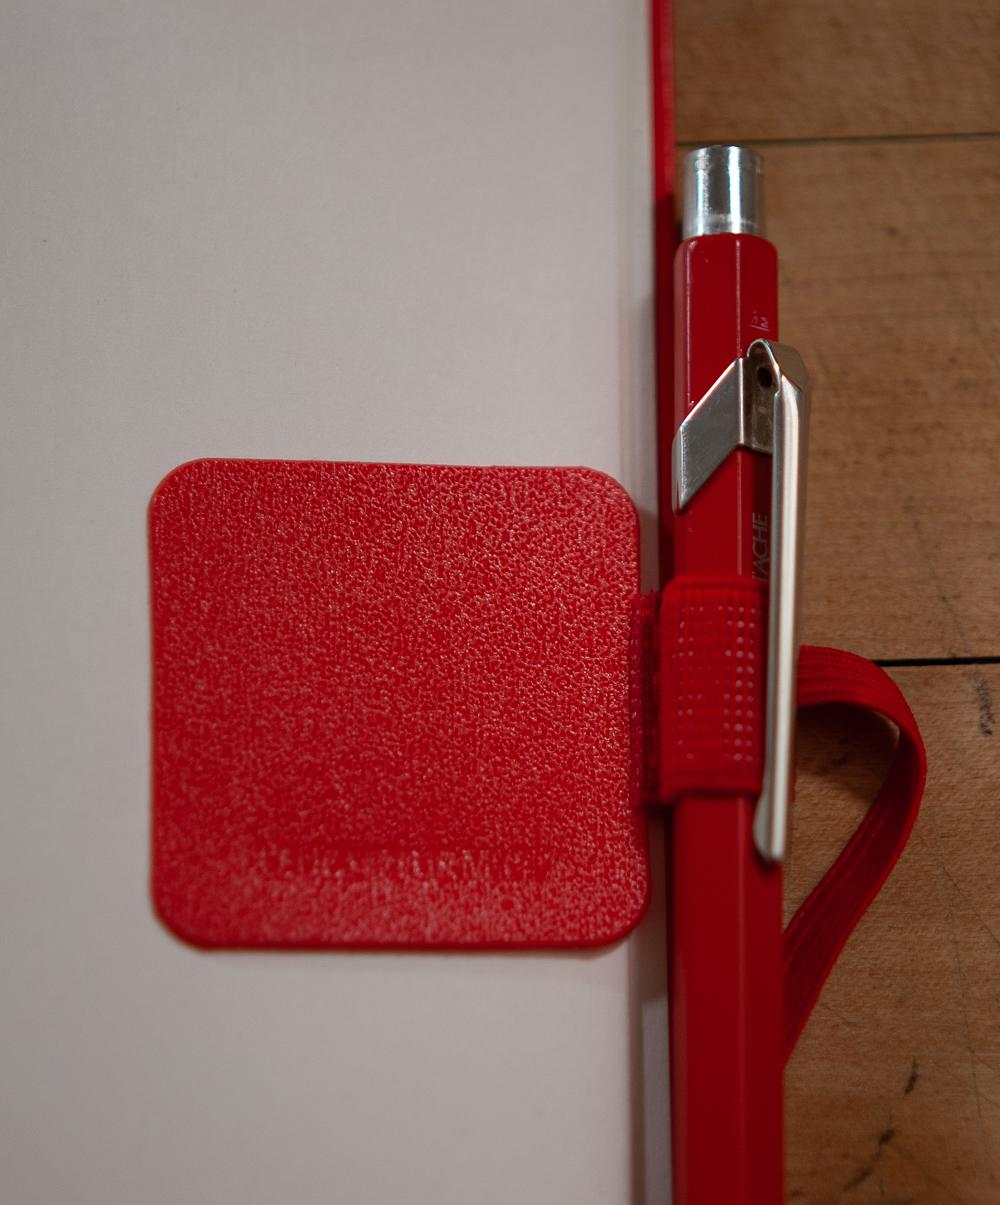 Red pen loop attached to back page of Leuchtturm1917